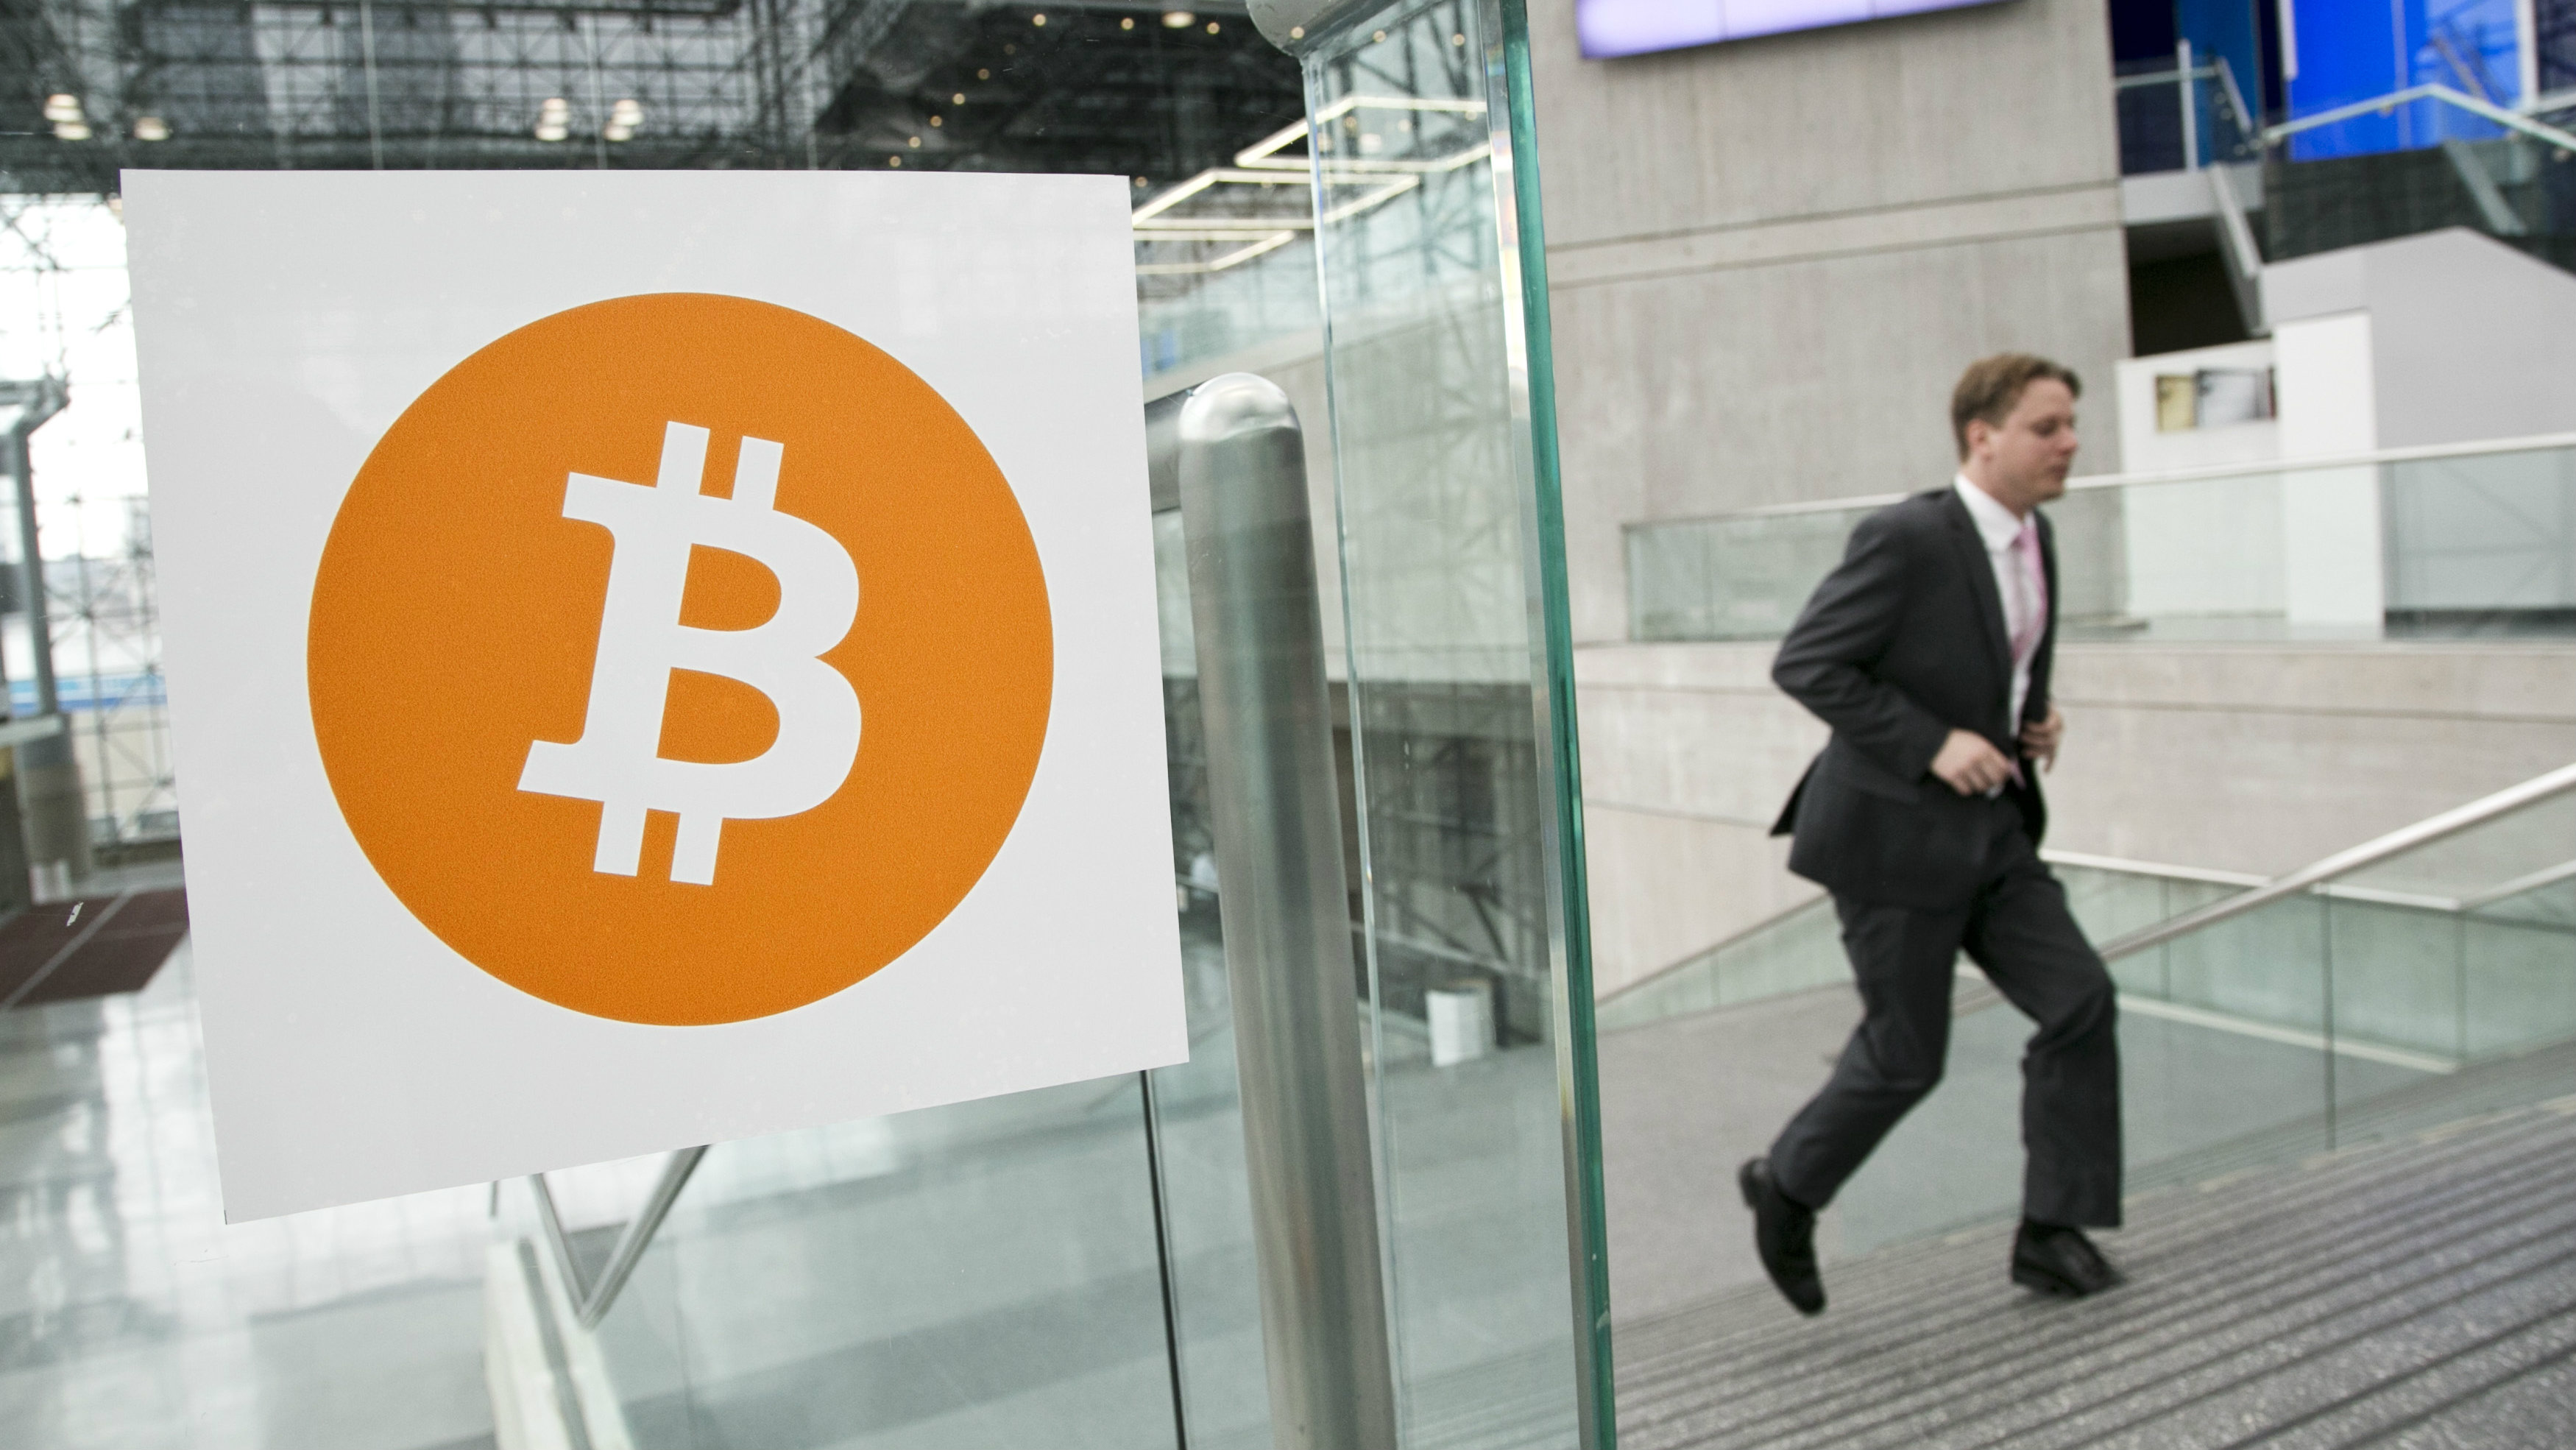 In this April 7, 2014 file photo, a man arrives for the Inside Bitcoins conference and trade show in New York. An Australian man long thought to be associated with the digital currency Bitcoin has publicly identified himself as its creator. BBC News said Monday, May 2, 2016 that Craig Wright told the media outlet he is the man previously known by the pseudonym Satoshi Nakamoto. The computer scientist, inventor and academic says he launched the currency in 2009 with the help of others.